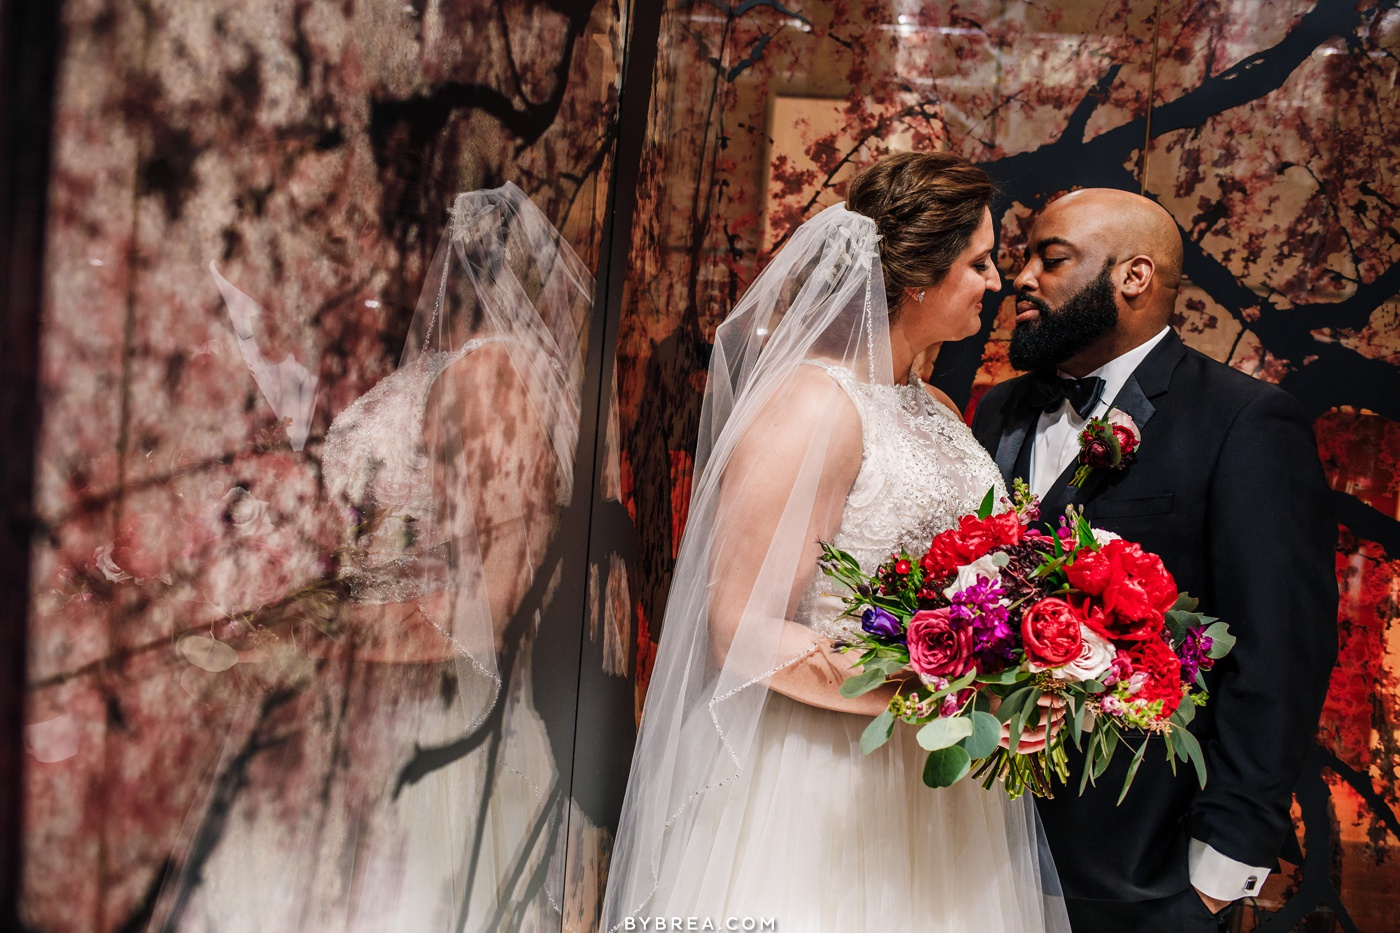 Intimate moment between bride and groom during portraits at Park Hyatt wedding D.C.